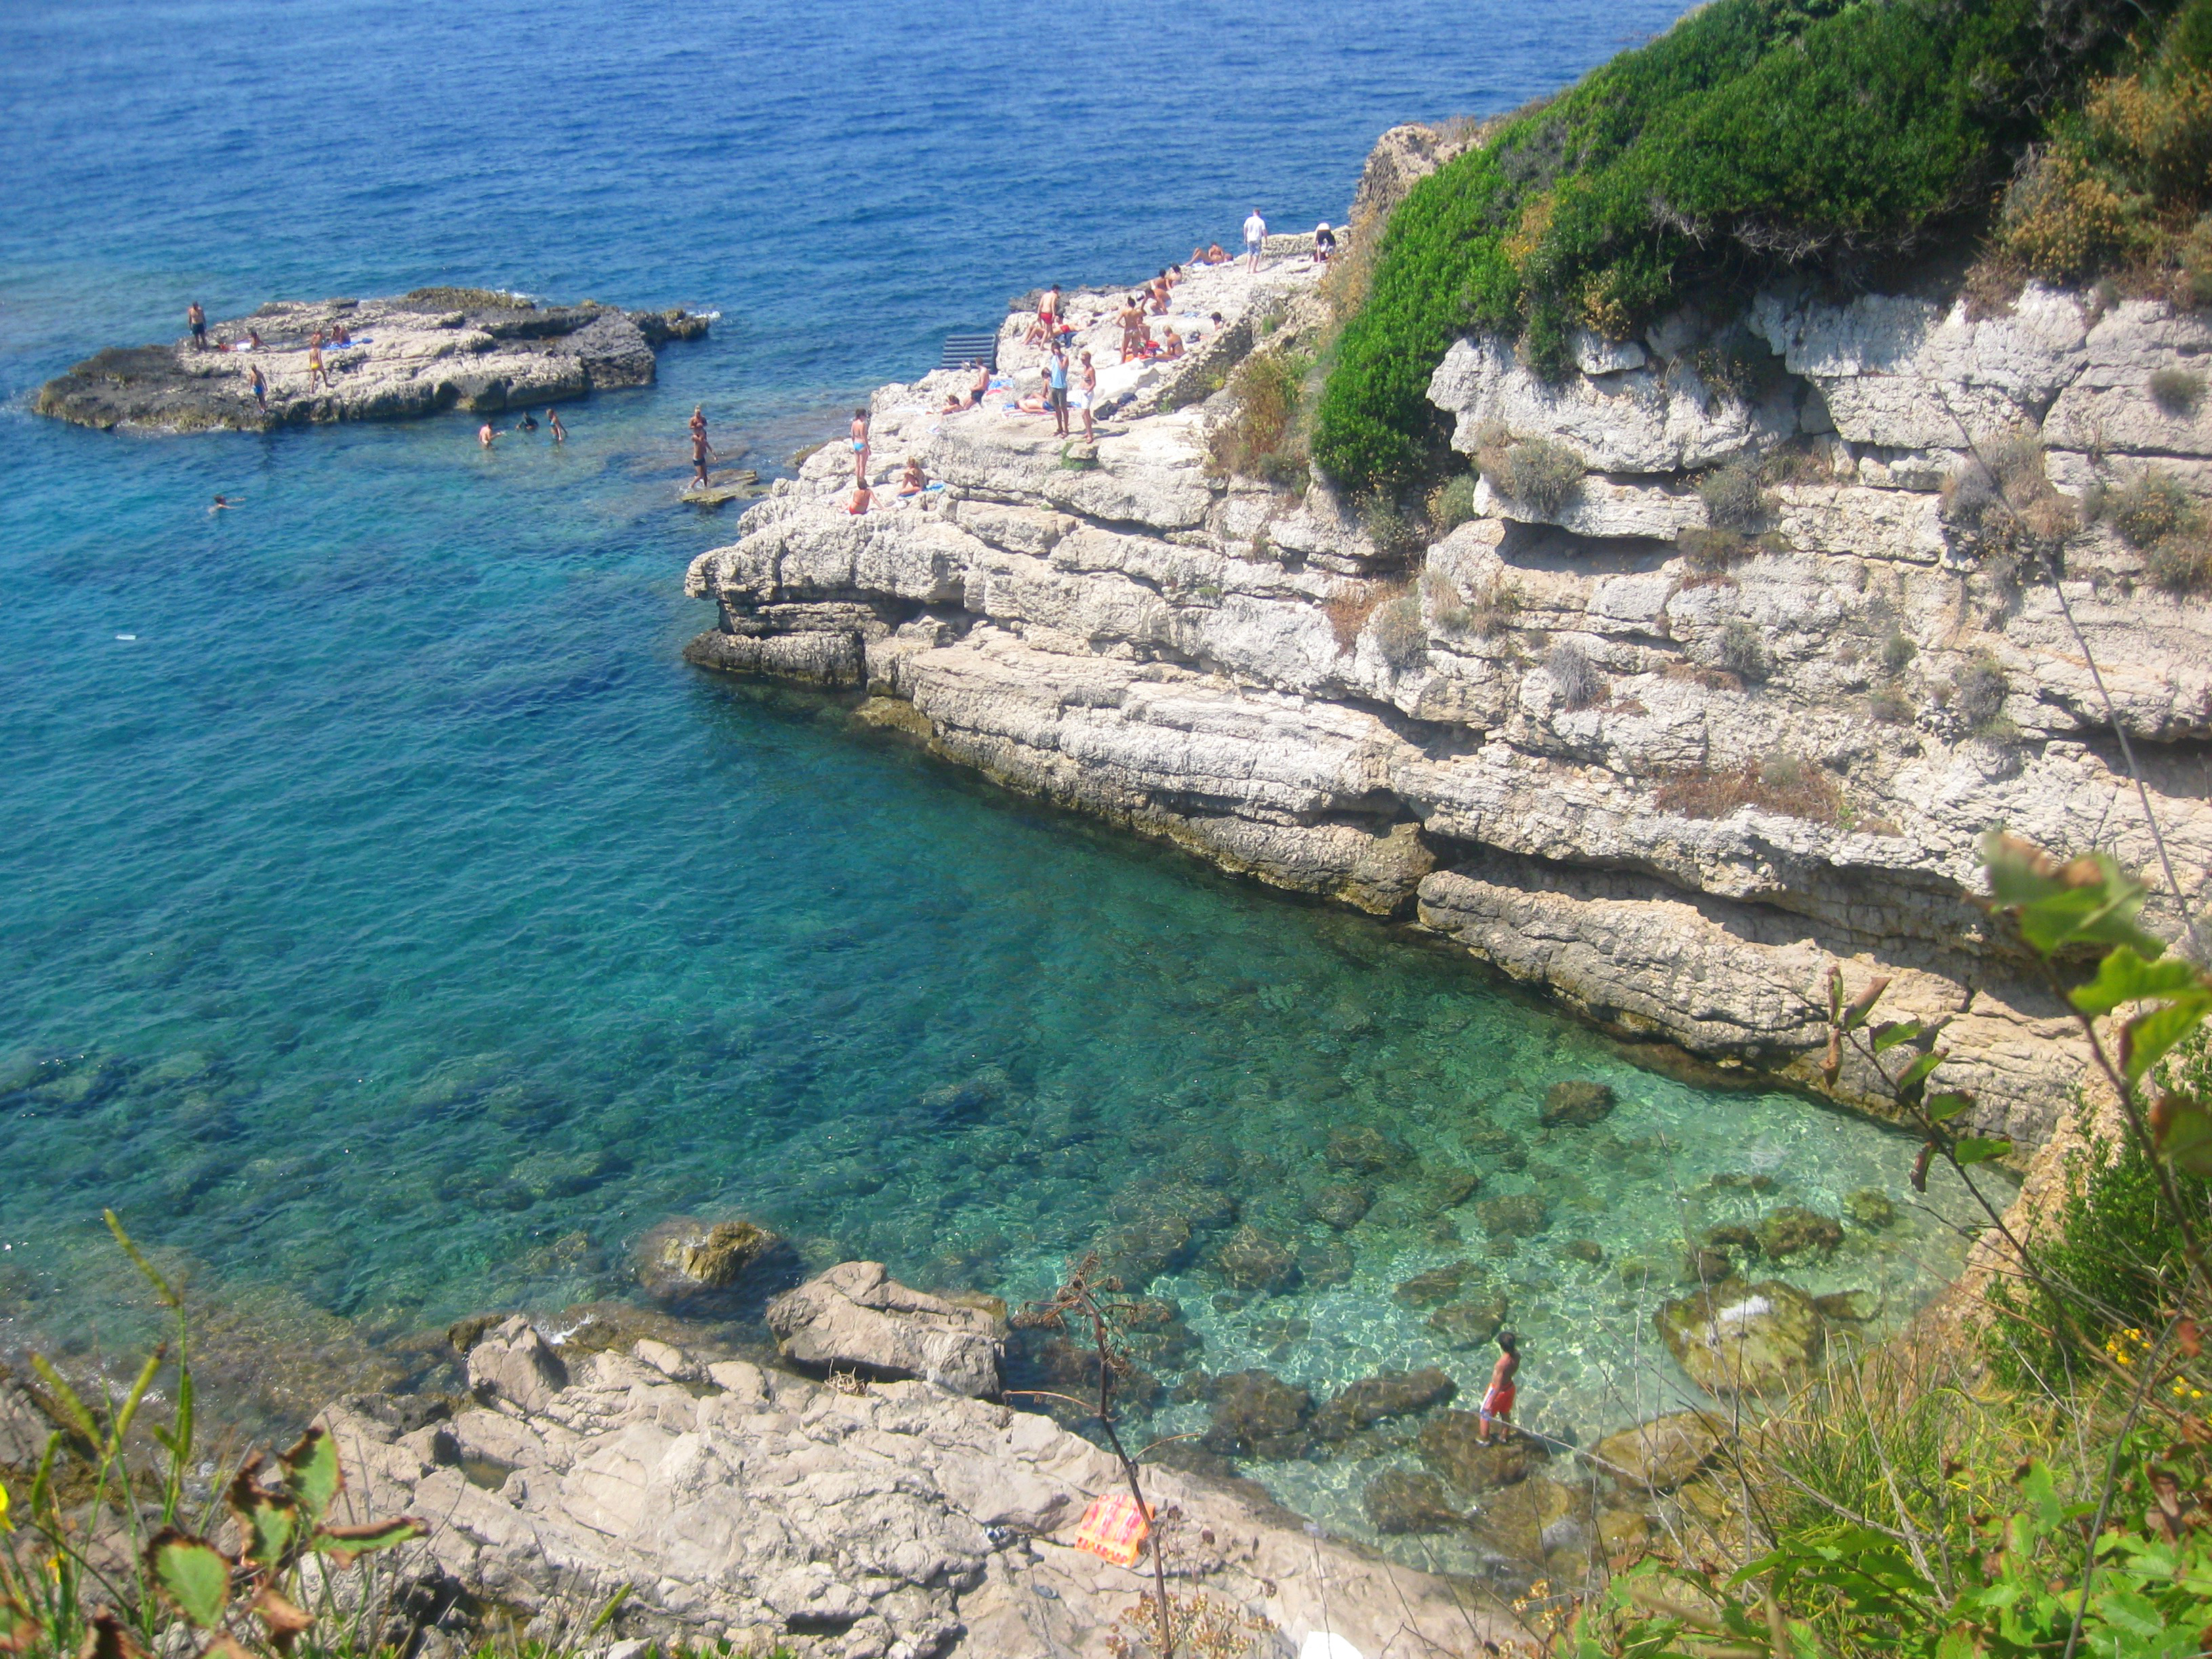 Crystal blue waters at the Bagni della Regina Giovanna